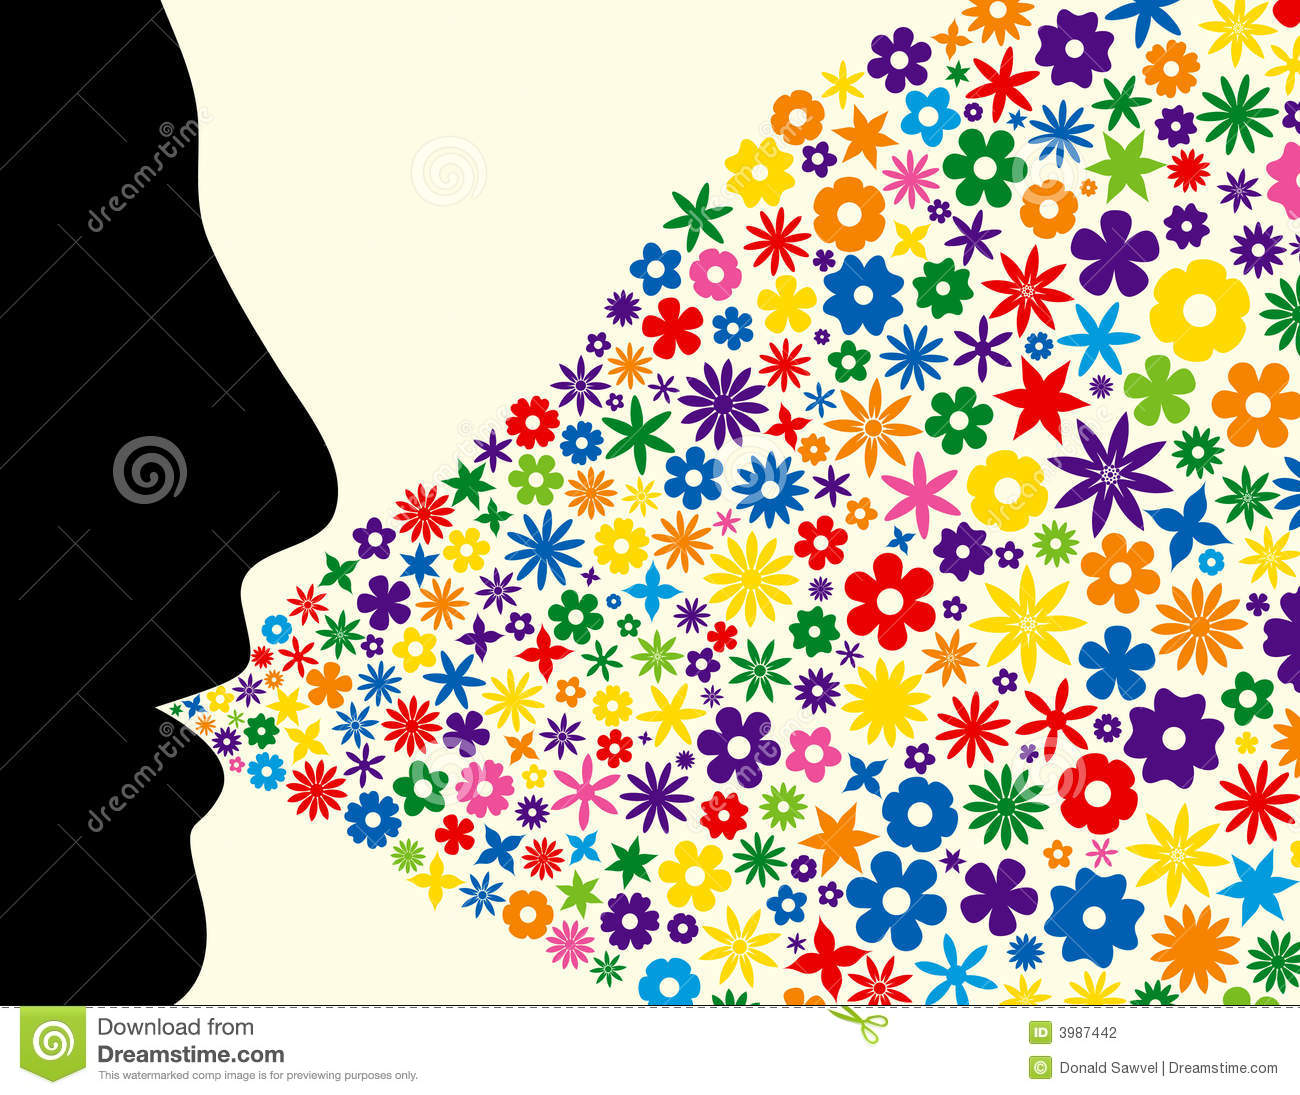 Image result for guy profile silhouette image with floral ...  Face Profile Silhouette Blowing